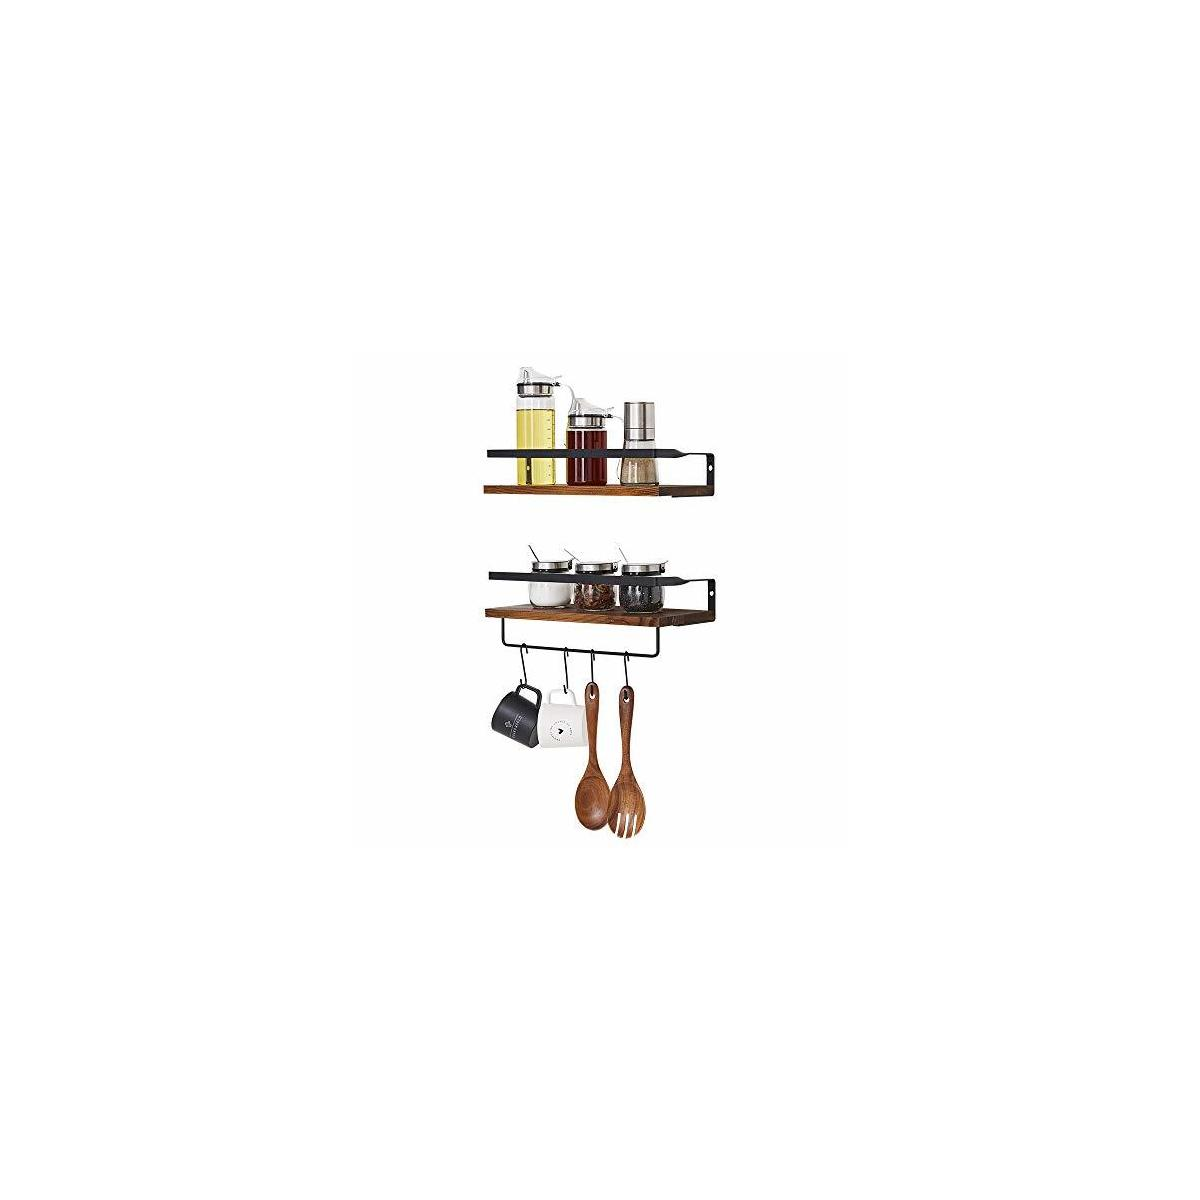 4 in 1 Rustic Wood Wall Mounted Floating Shelves Storage Shelf with 2 Removable Hooks